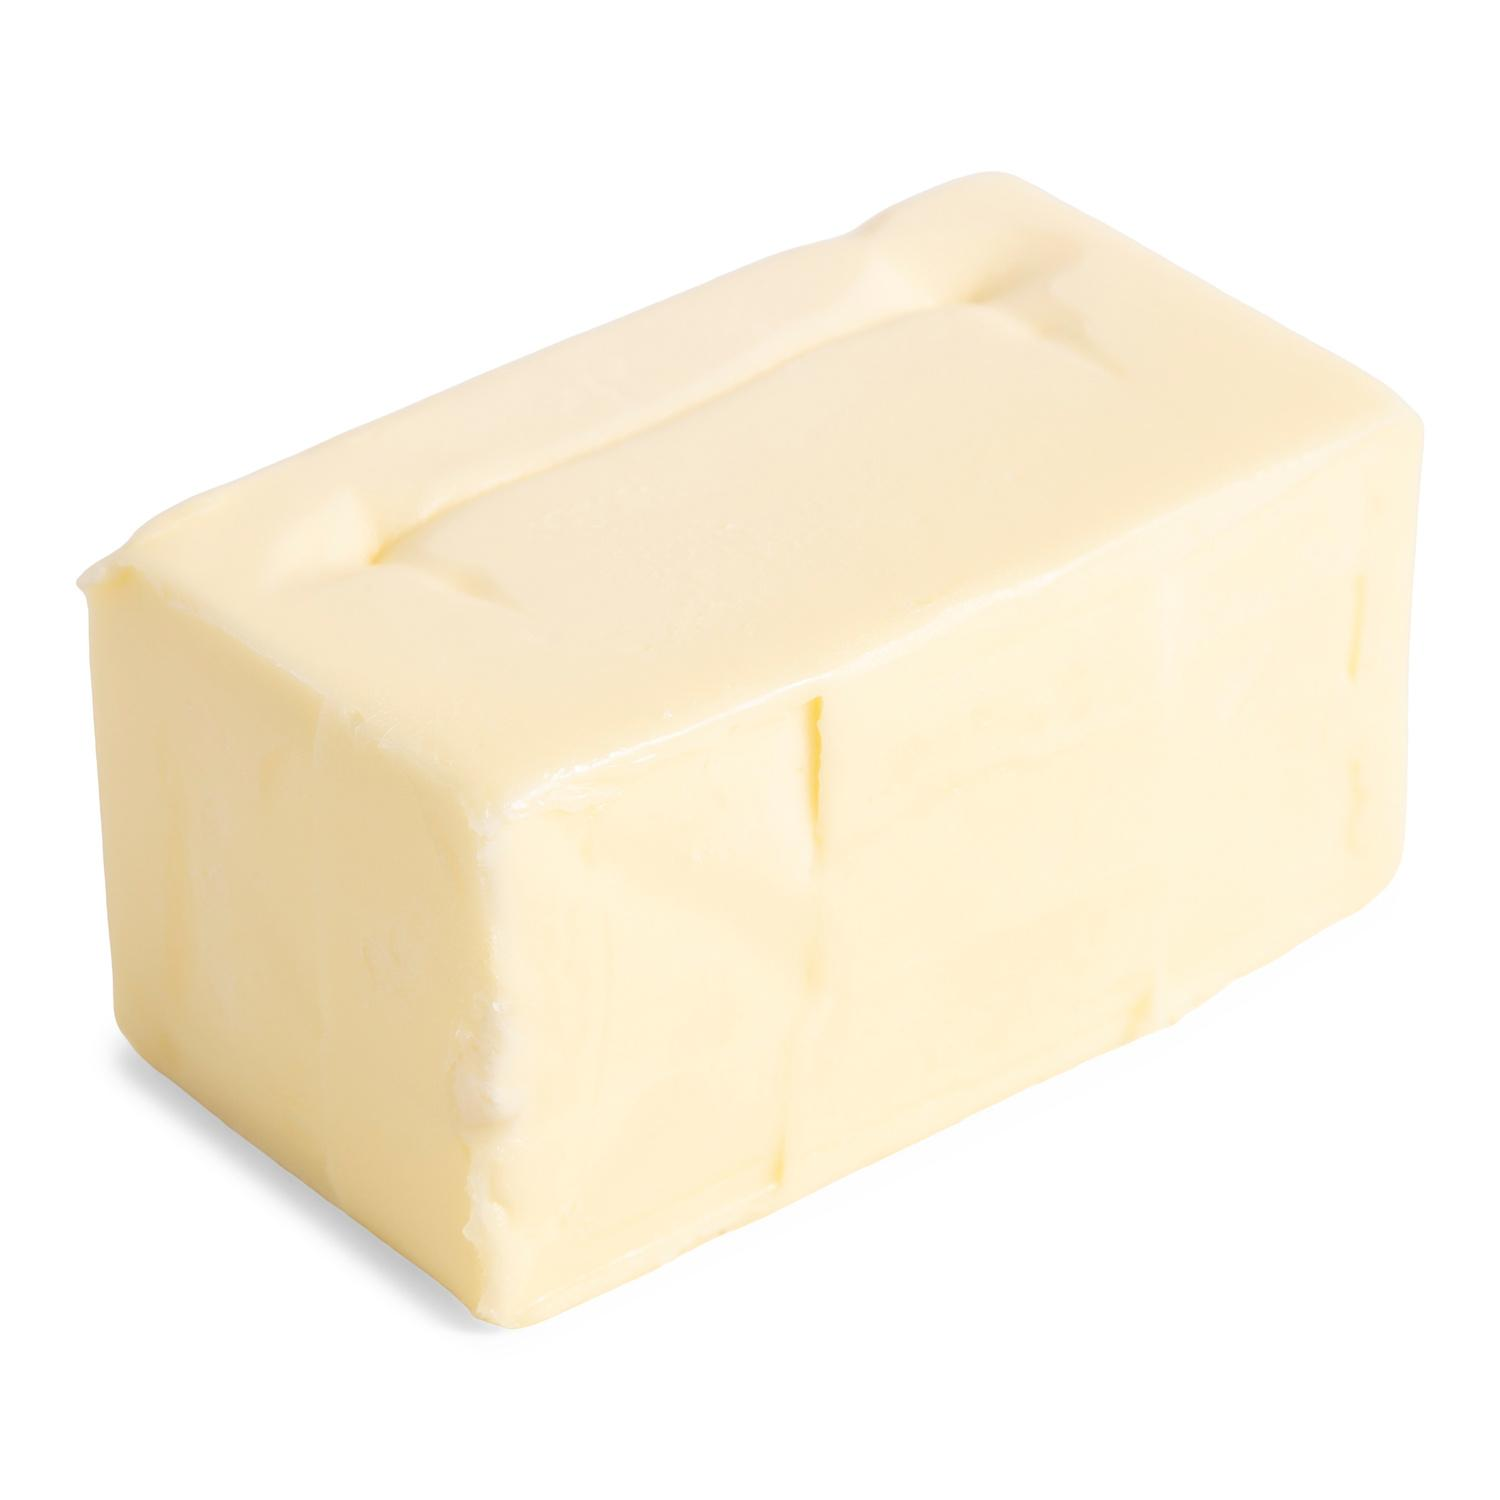 image of Unsalted Butter